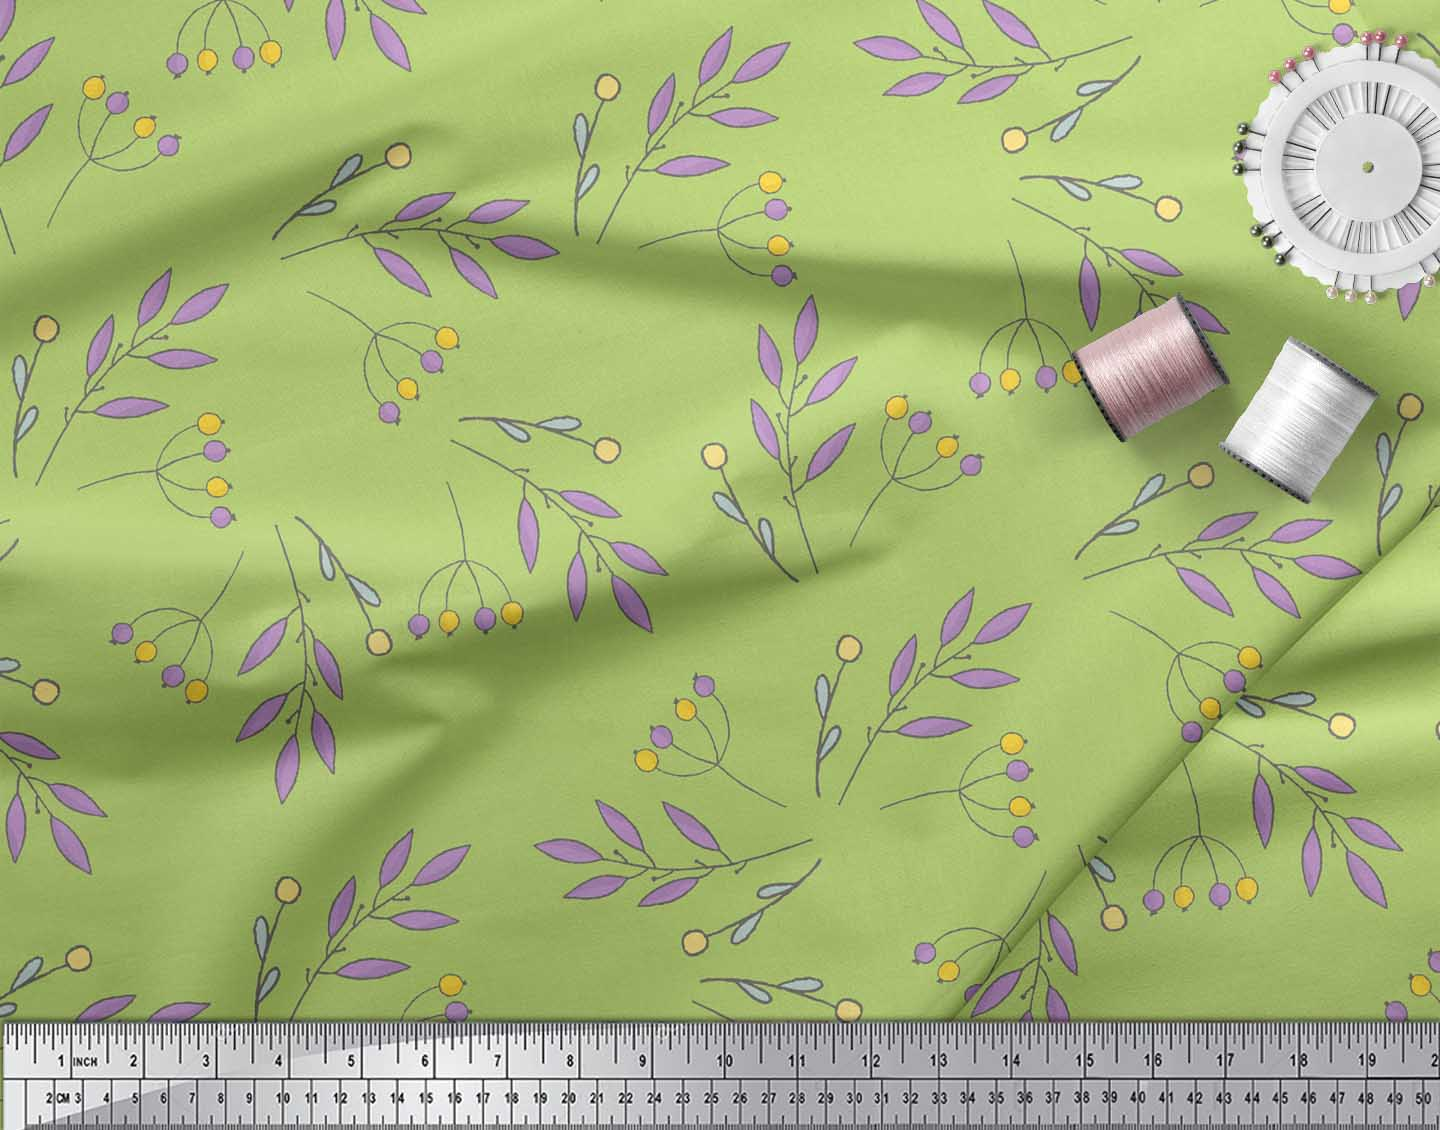 Soimoi-Green-Cotton-Poplin-Fabric-Berries-Leaves-Print-Fabric-by-4AW thumbnail 3